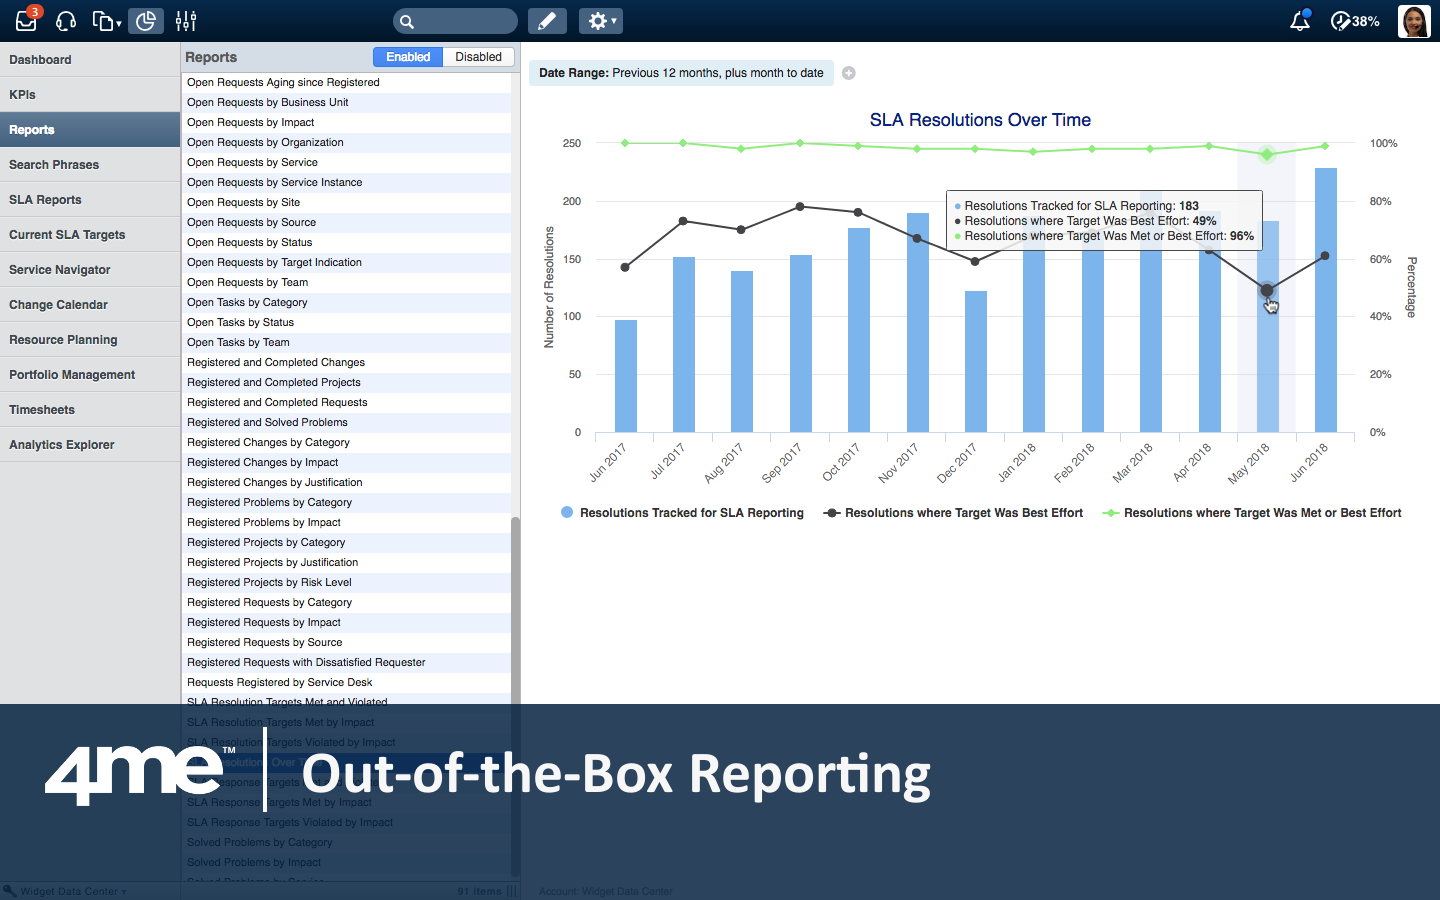 4me provides 100s of standard reports that can be customized by applying filters. They can also be used to prepare shared dashboards.